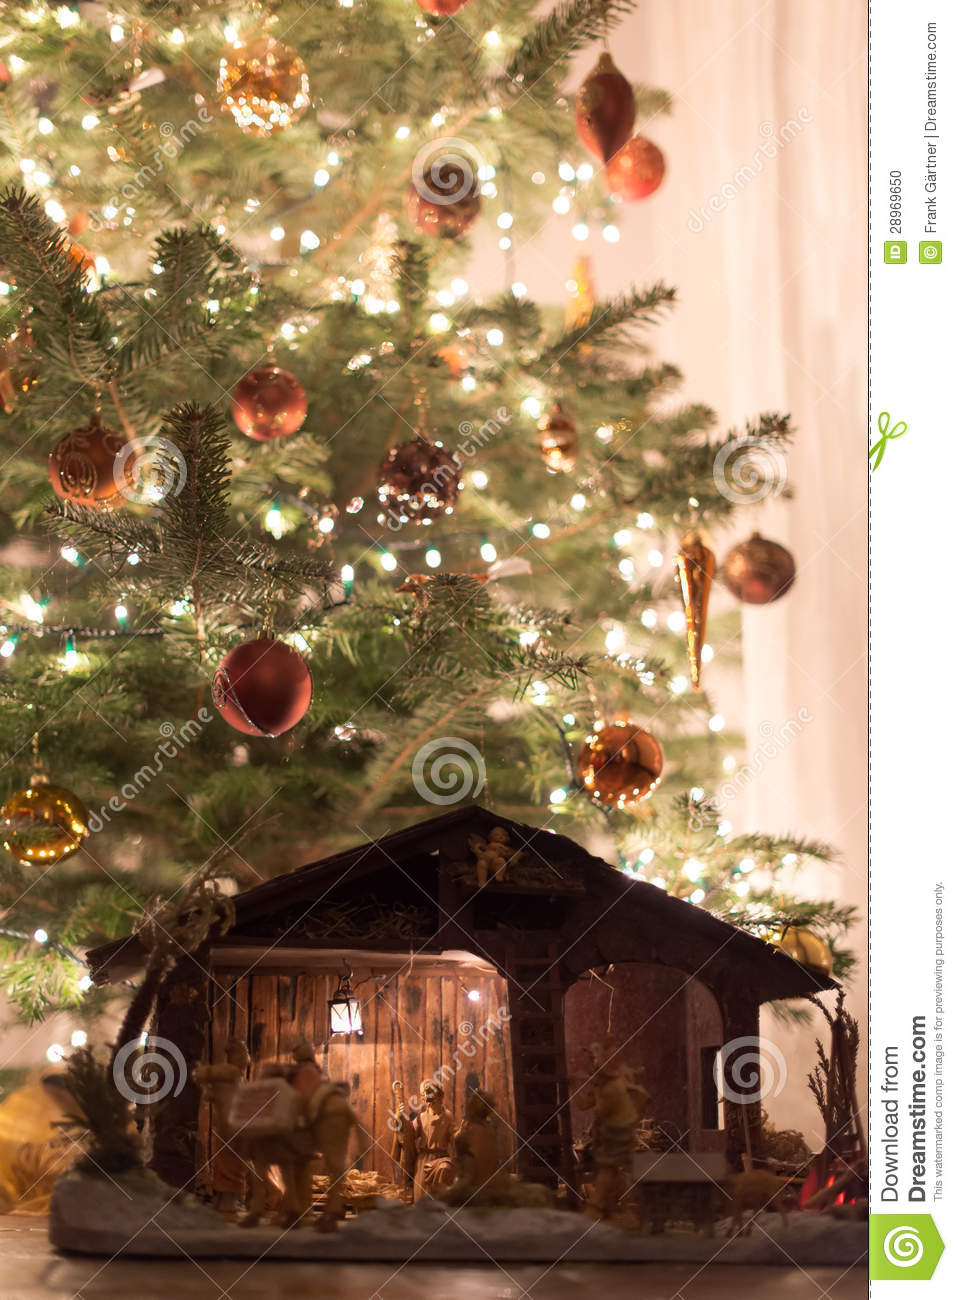 Christmas Tree With Crib Stock Photo Image Of Ancient